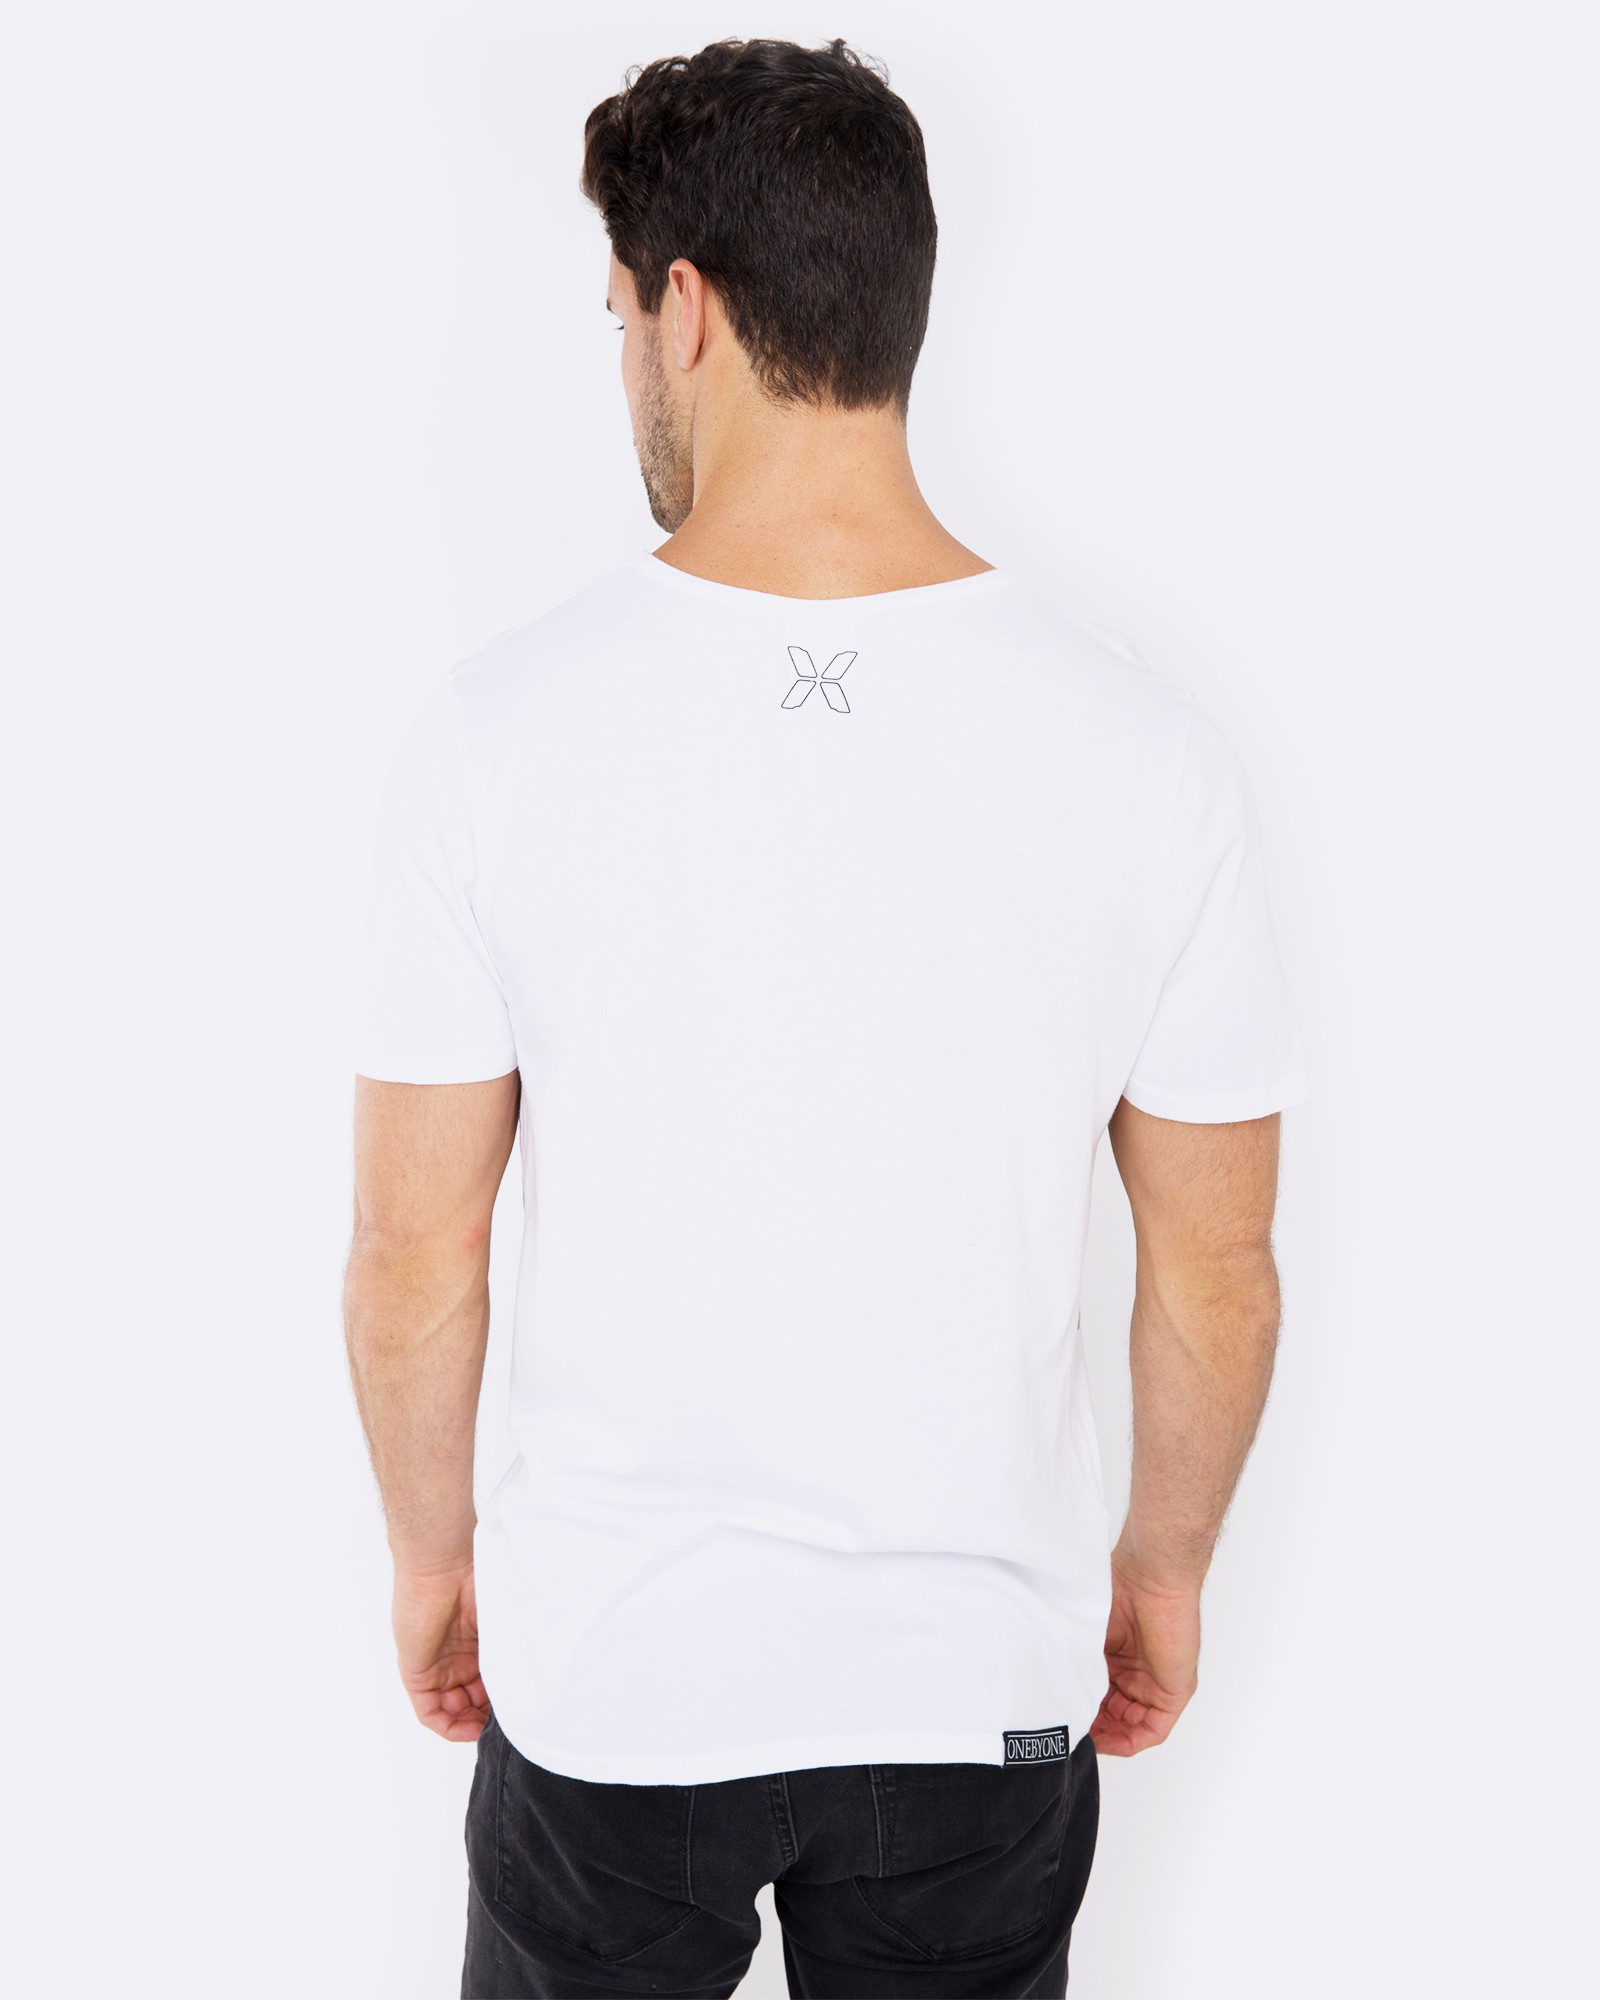 FIND ME IN THE WOODS WHITE TEE